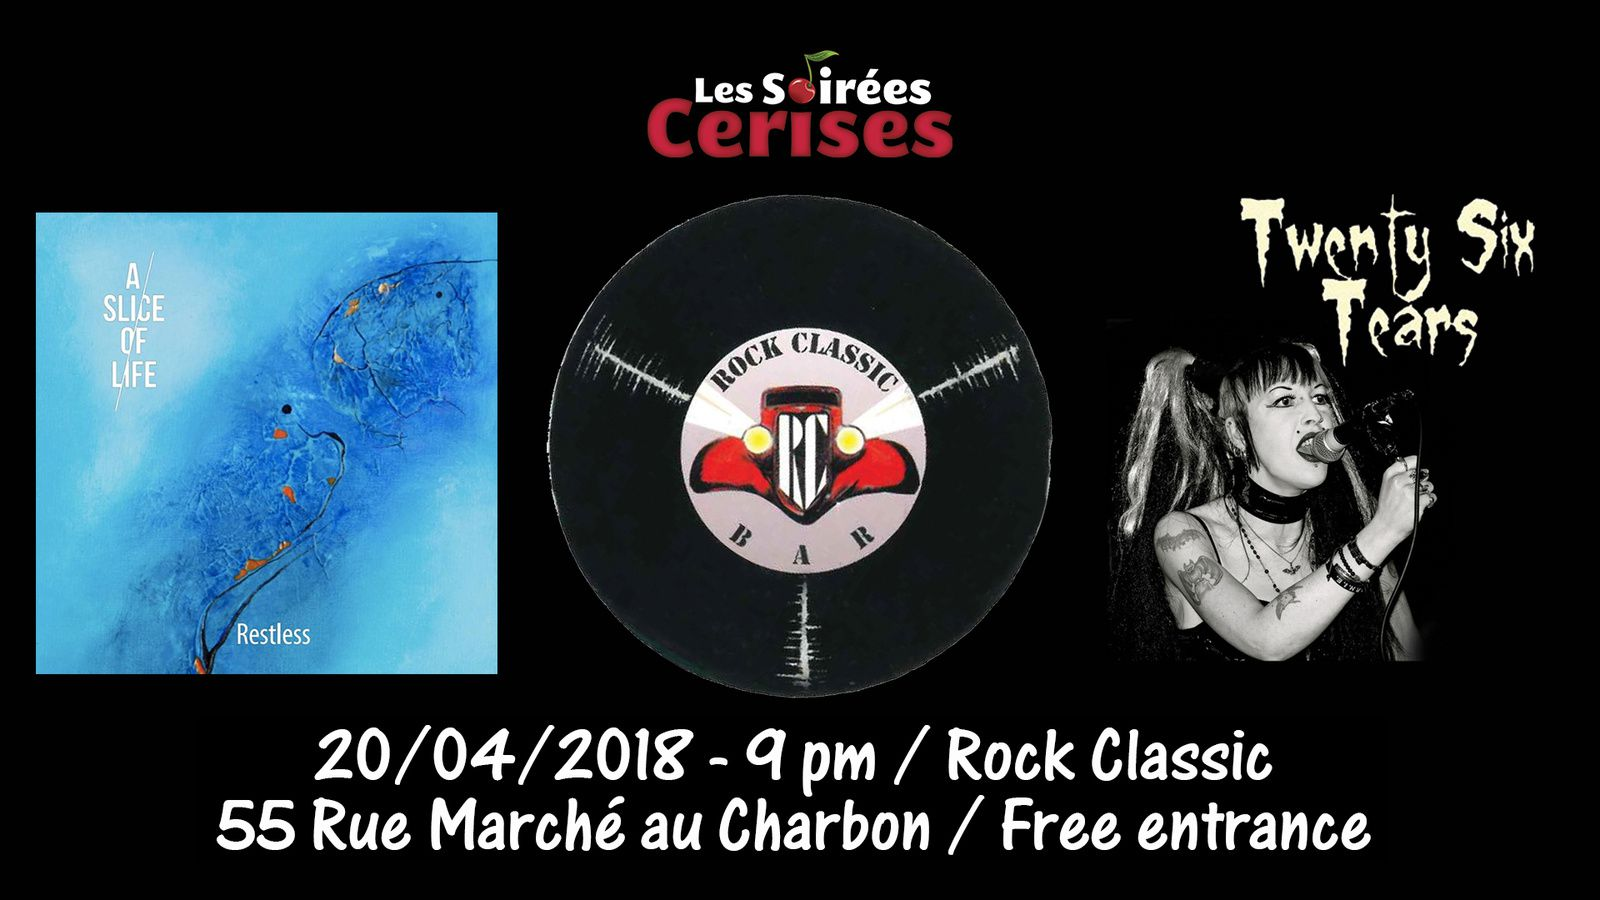 ▶ A slice of life + Twenty Six Tears @ Rock Classic - 20/04/2019 - 21h00 - Entrée gratuite !